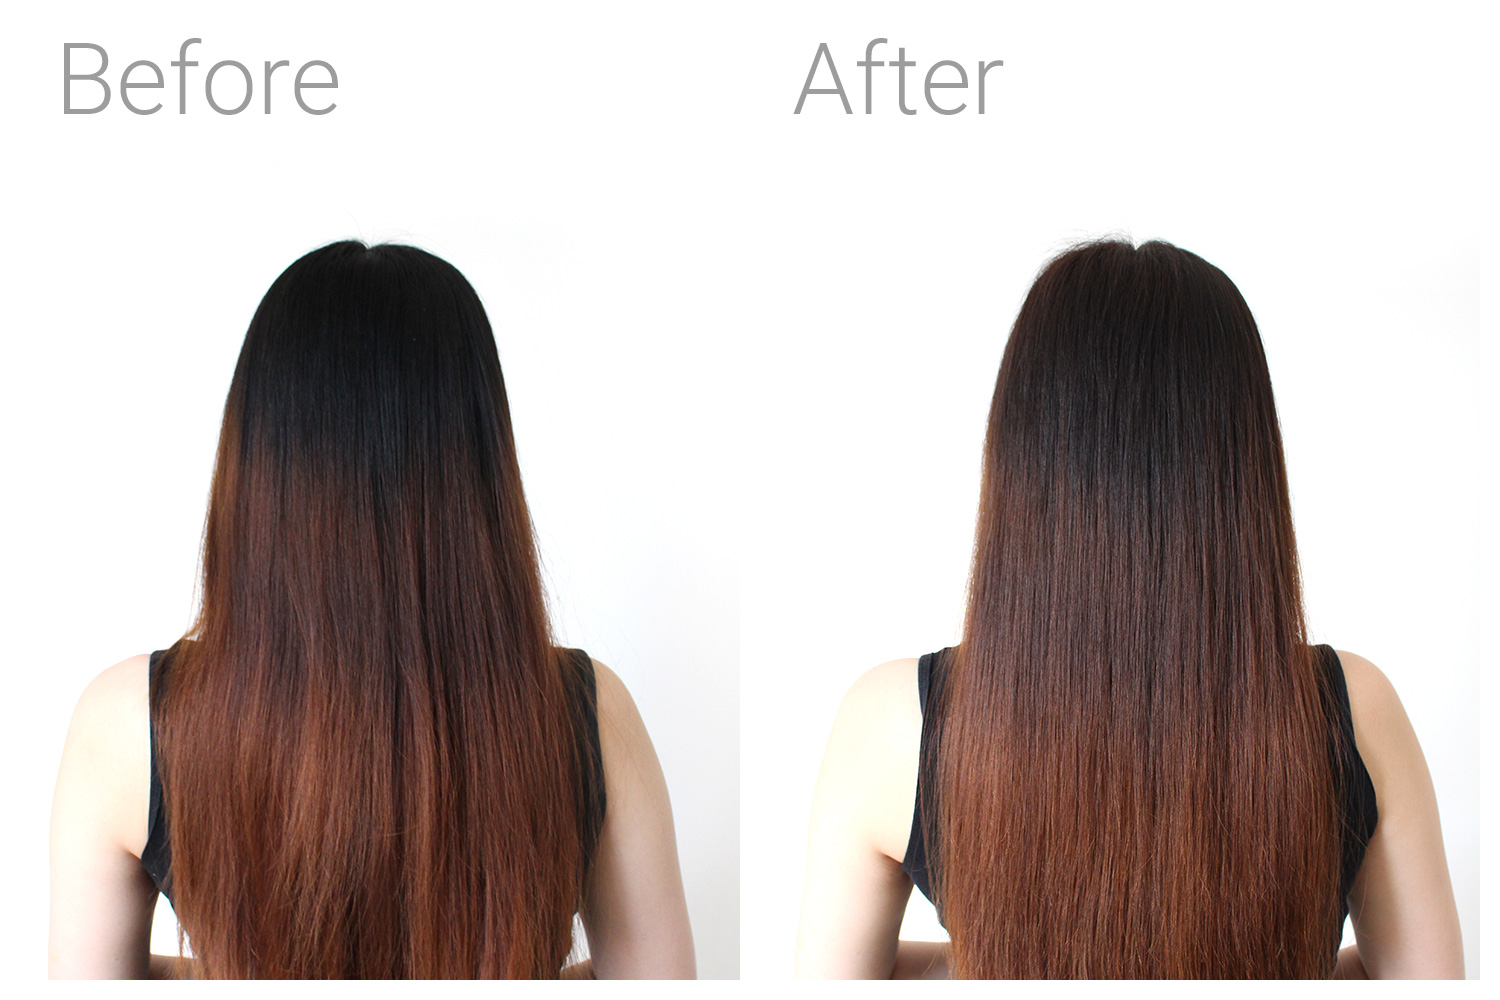 Cooled Down This Clients Hair To Match Her Skin Tone And Lightened Up For Some Natural Summer